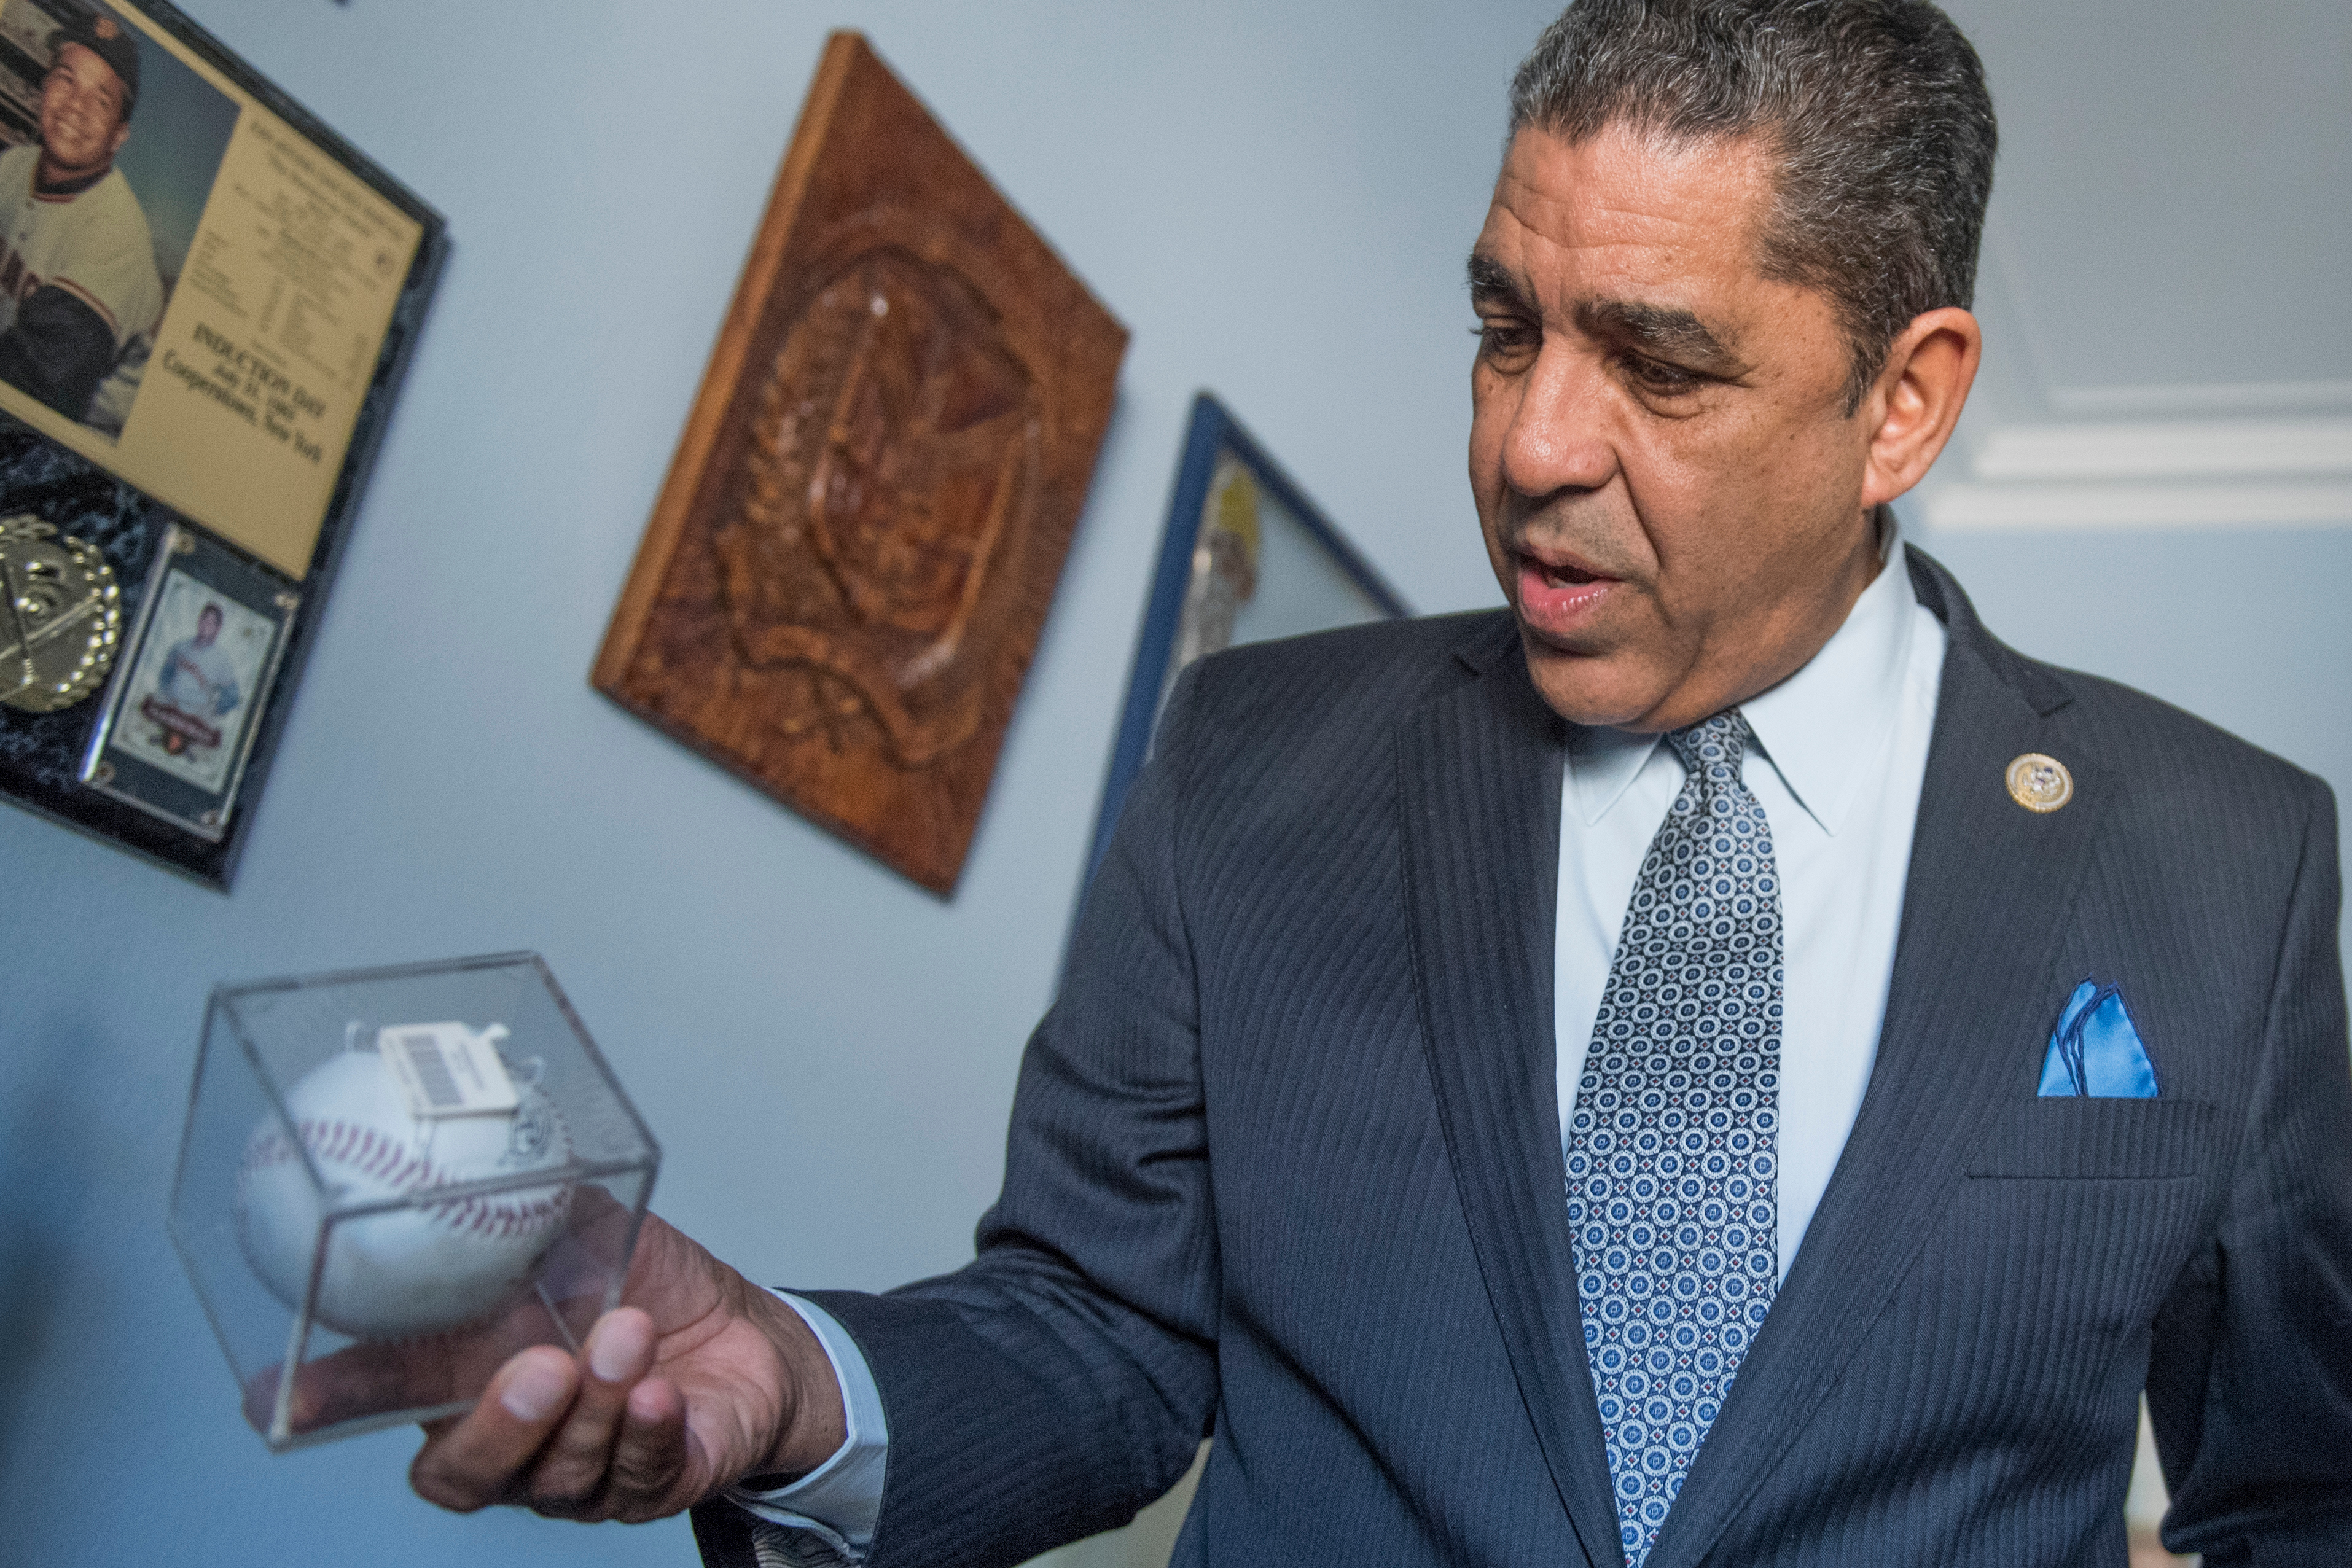 Rep. Adriano Espaillat, D-N.Y., is putting together a display of his baseball memorabilia in his Longworth office. (Tom Williams/CQ Roll Call)